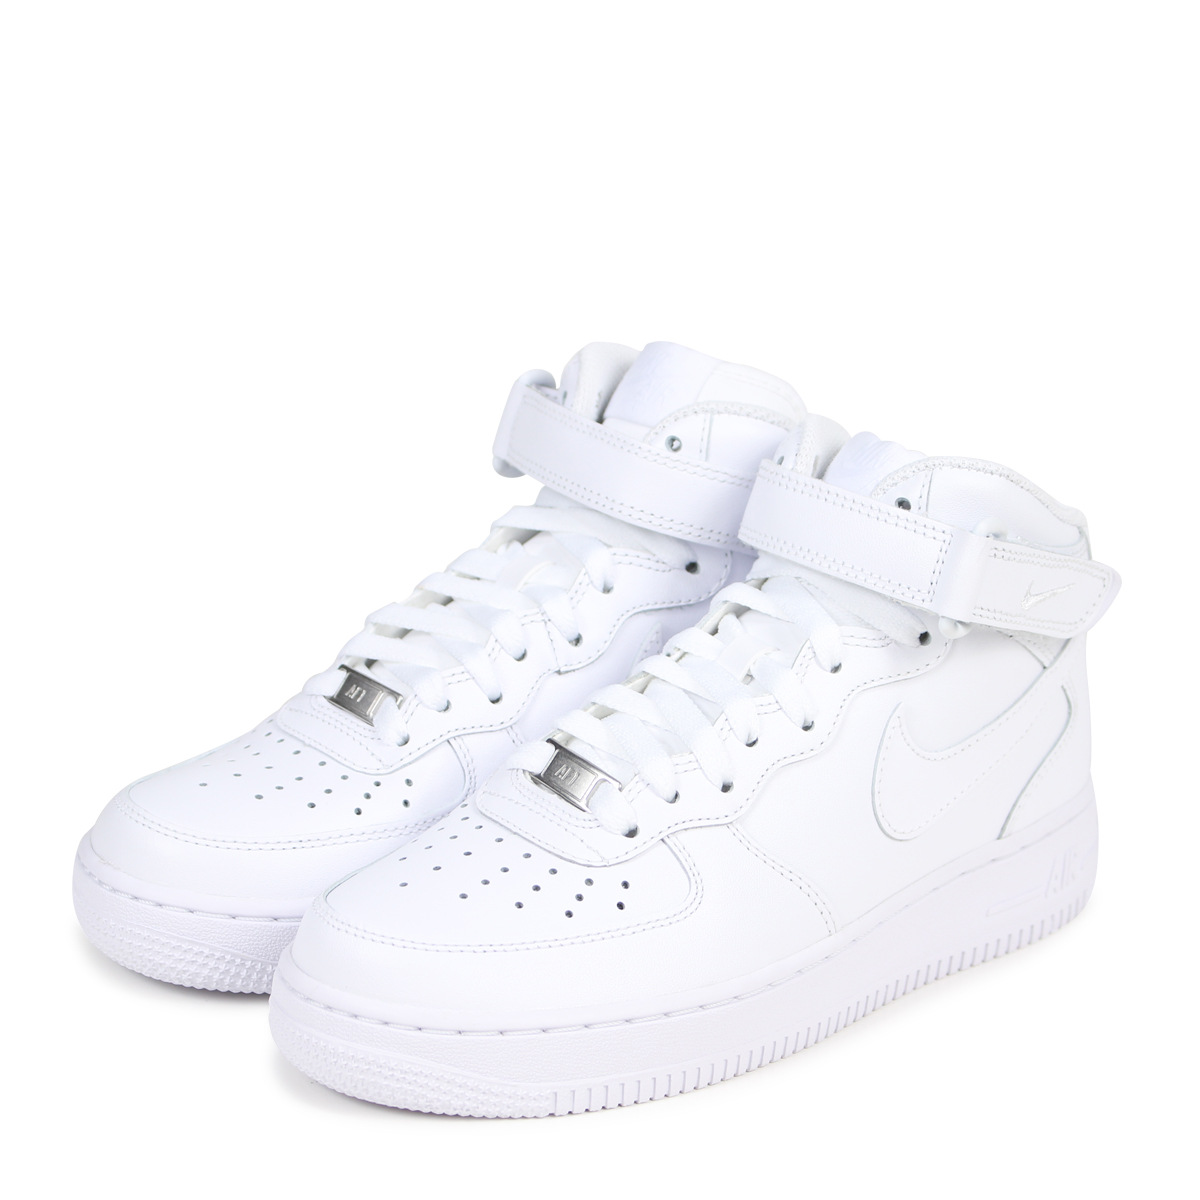 Nike NIKE air force 1 lady's sneakers WMNS AIR FORCE 1 MID 07 366,731 100 white